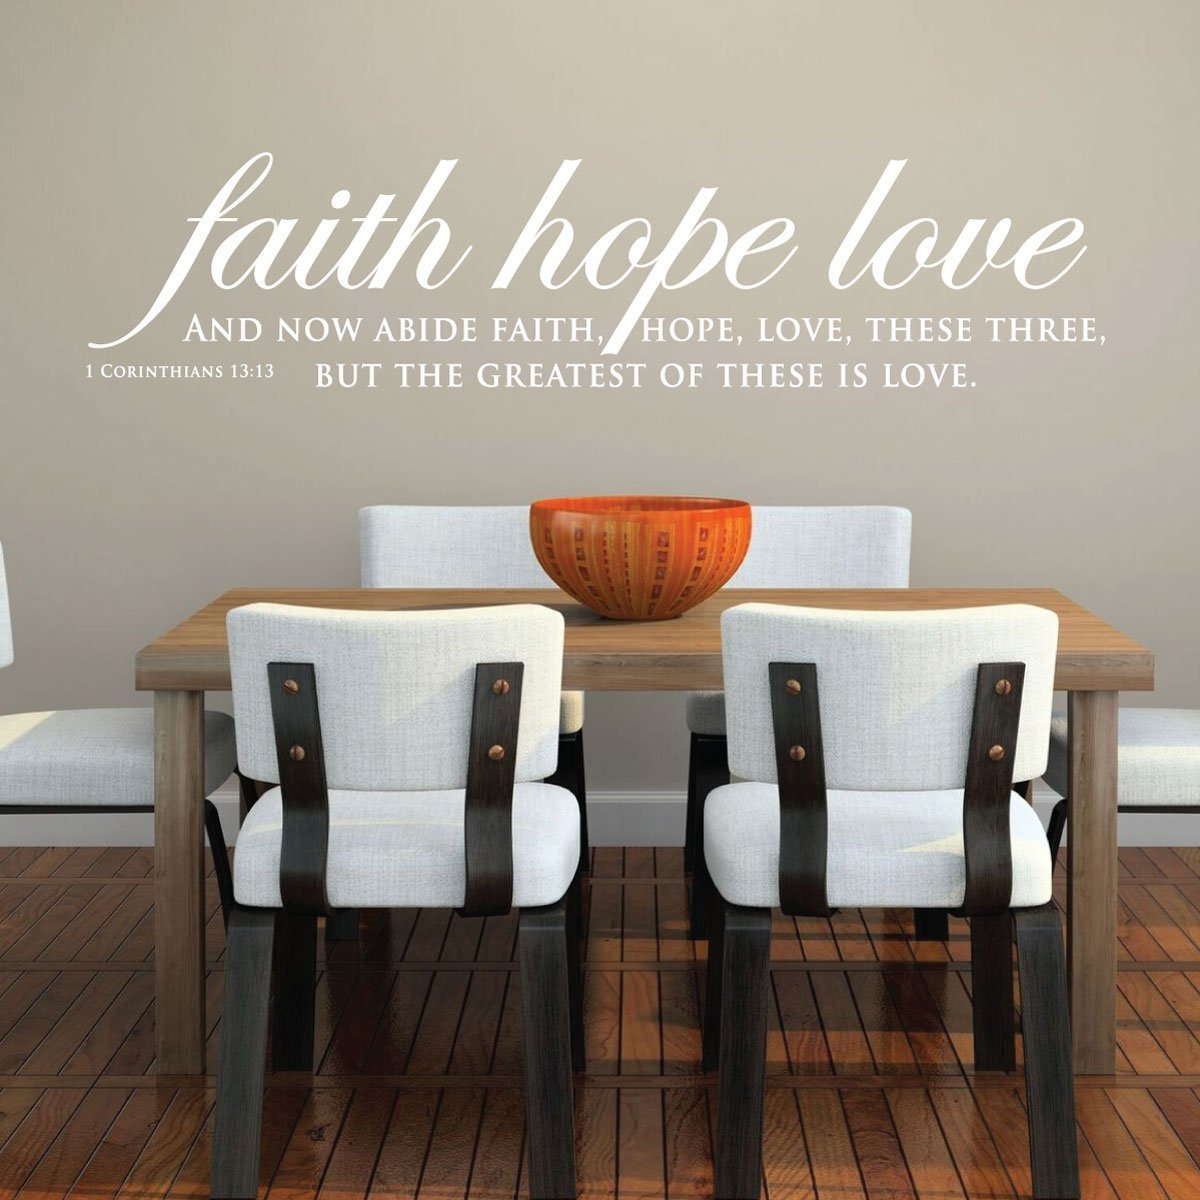 Charmant Bible Verse Wall Art   1 Corinthians 13:13 Wall Decal   Faith, Hope